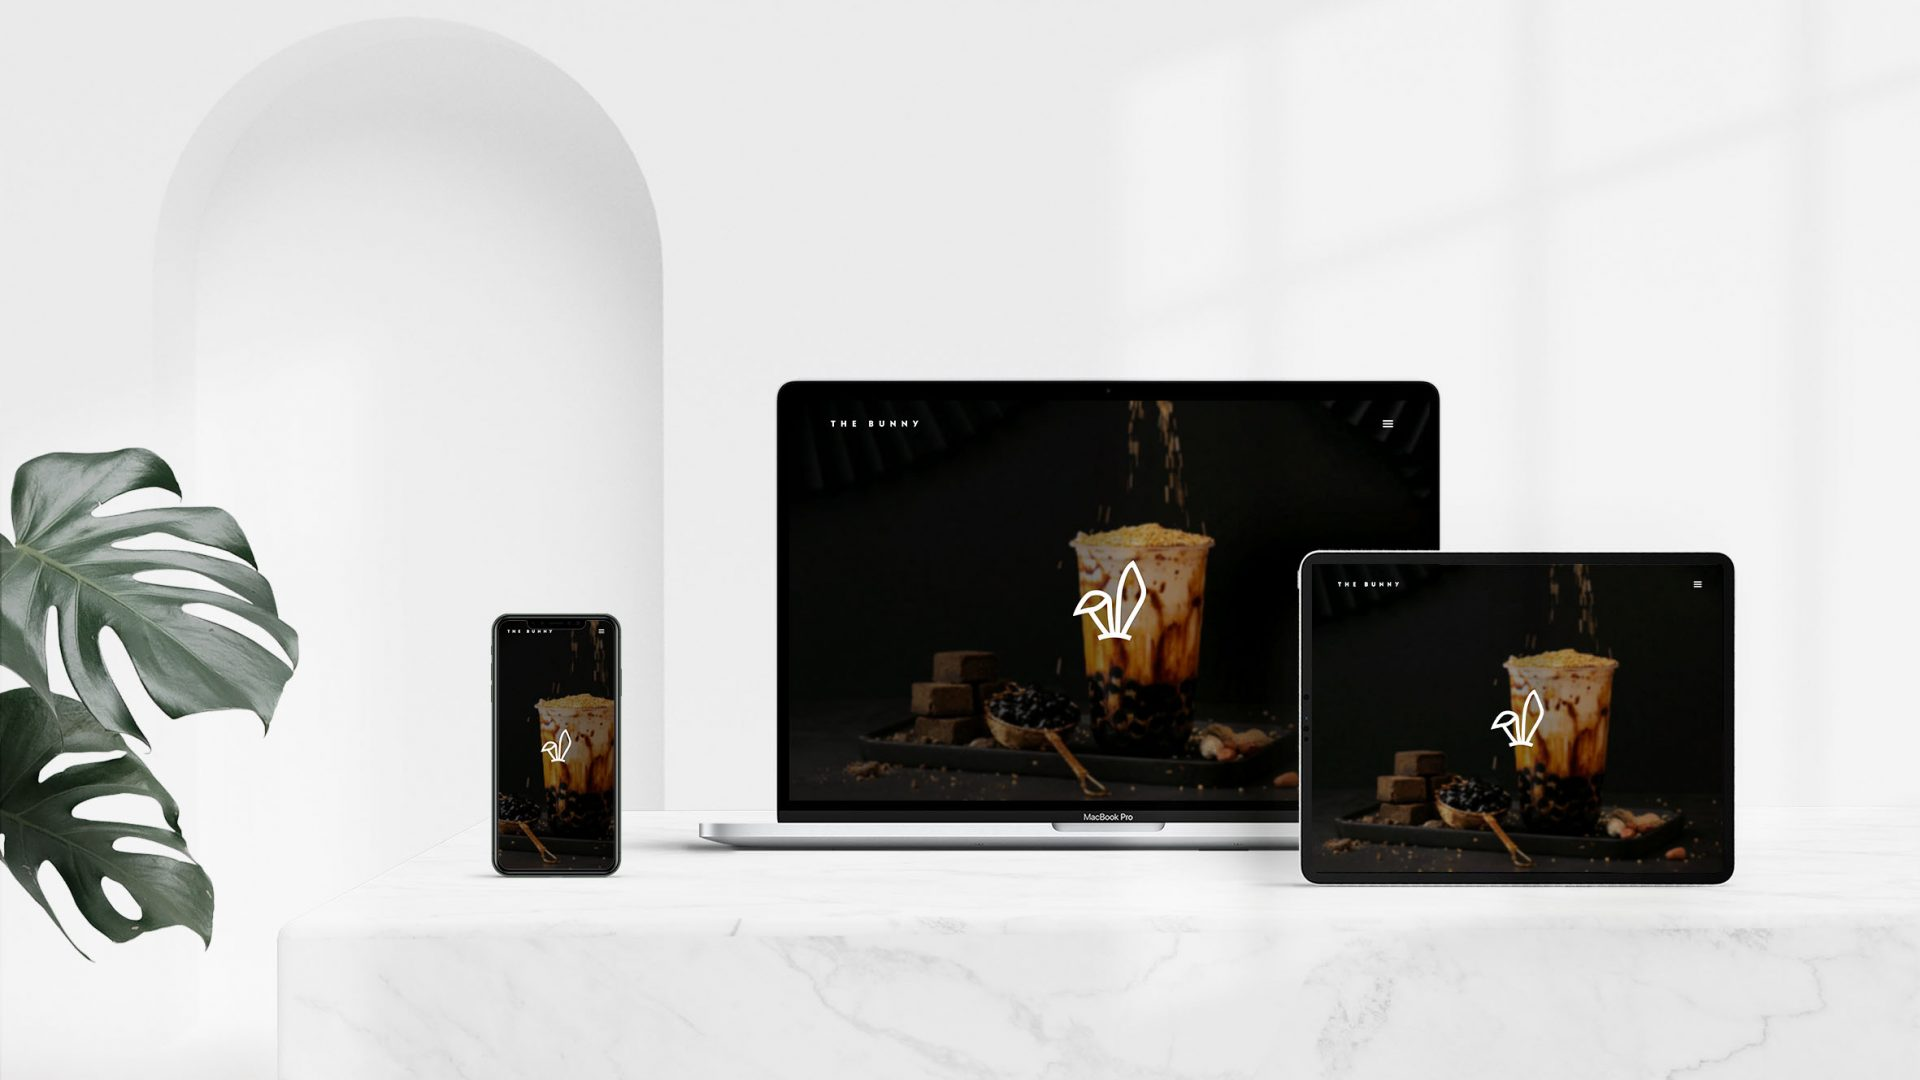 Brand identity design by Crate47. The Bunny bubble tea logo and marque as used on a website design. Shown on 3 devices.